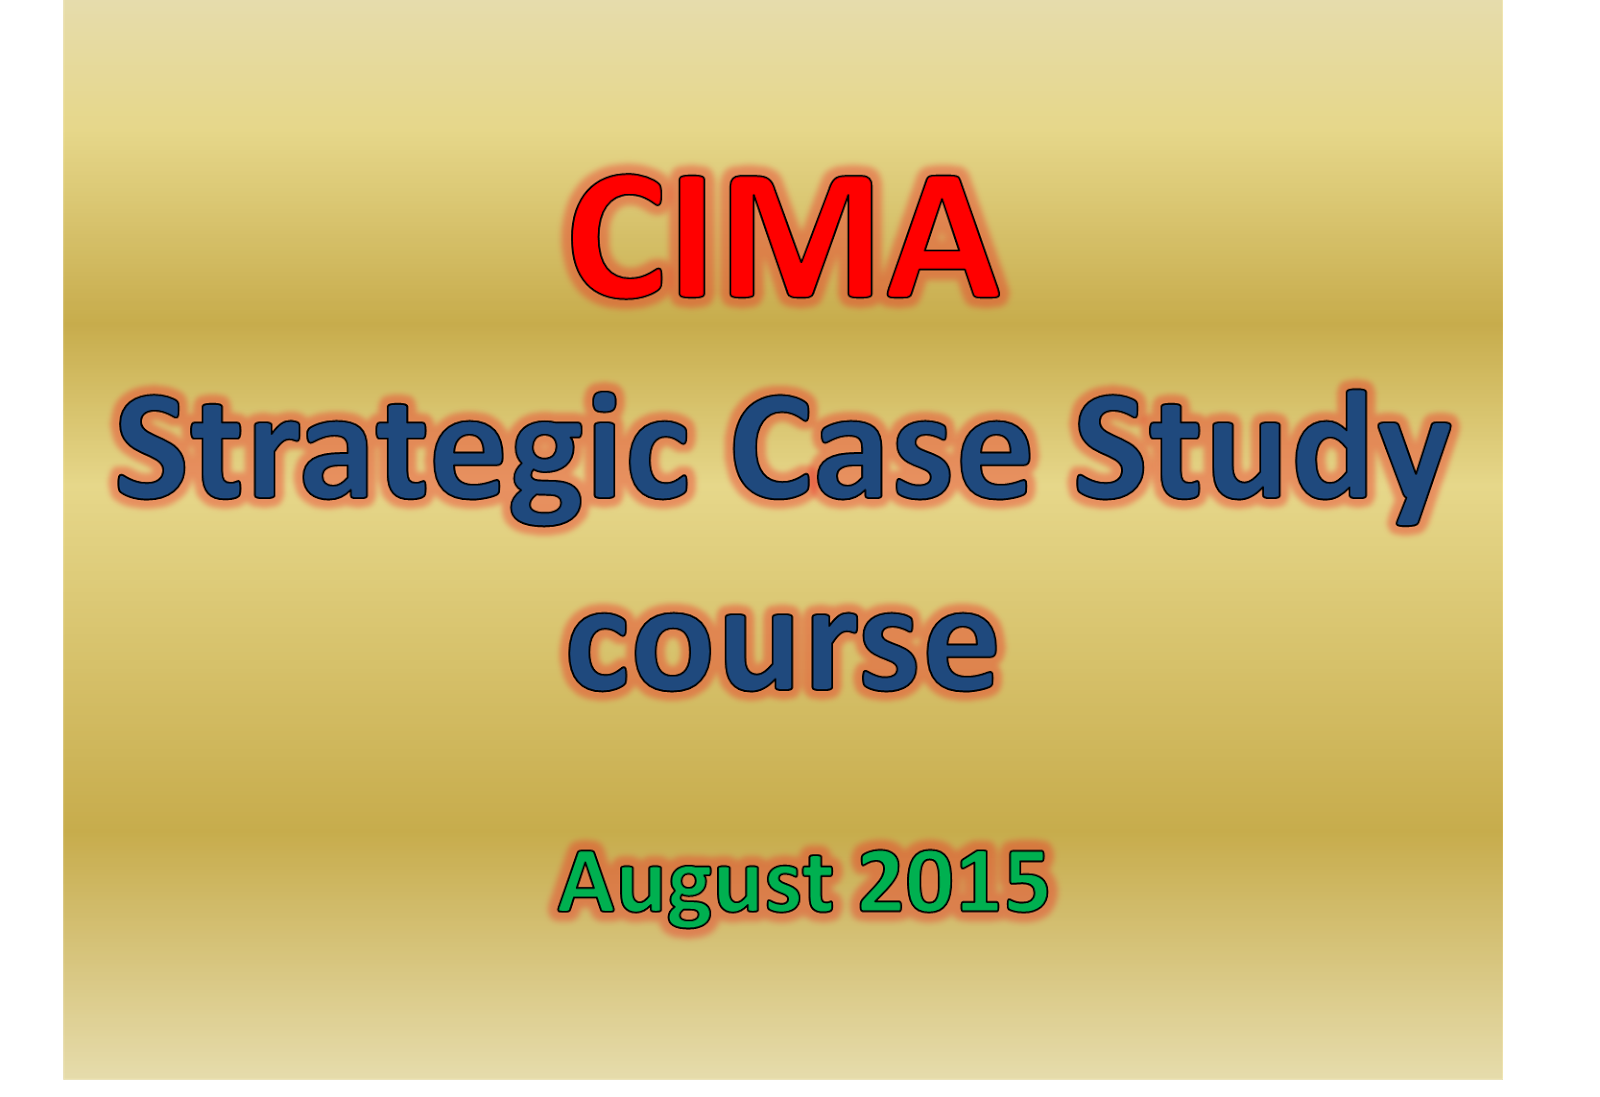 CIMA Management Case Study – A Winning Study Schedule